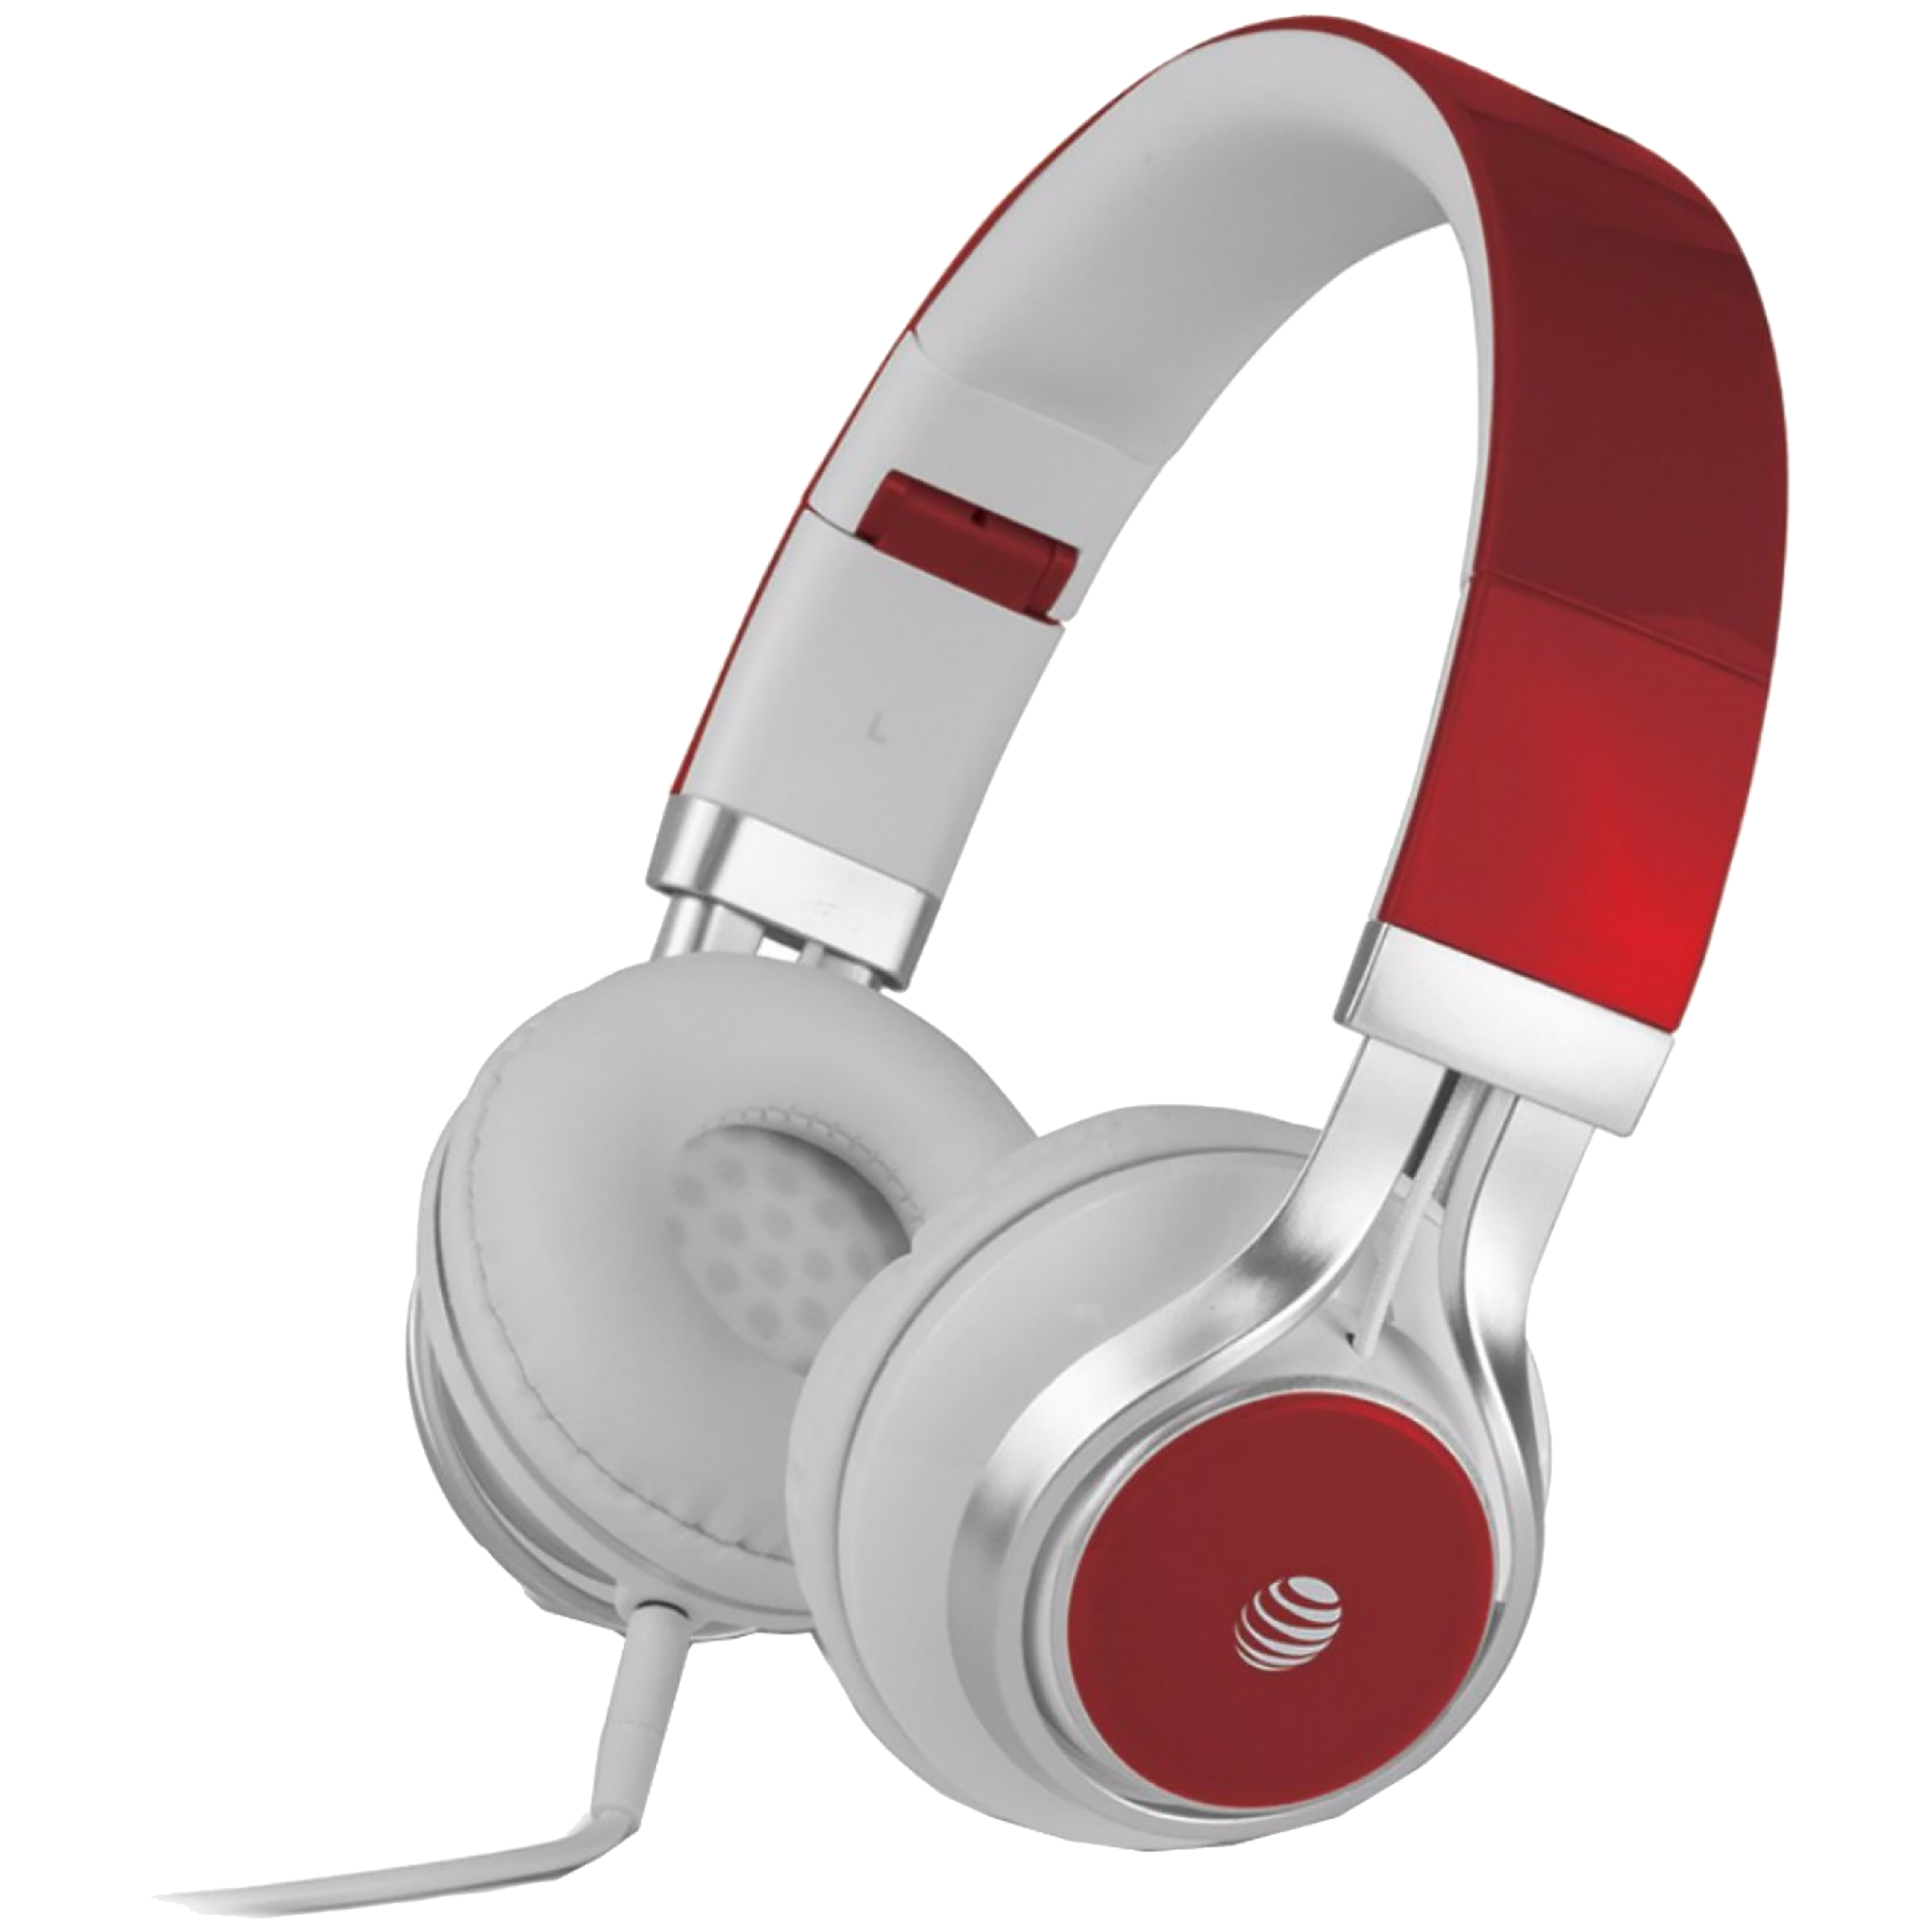 AT&T Over-Ear Noise Isolation Wired Headphone with Mic (Stereo Quality Sound, HPM10-BLU, Red)_1